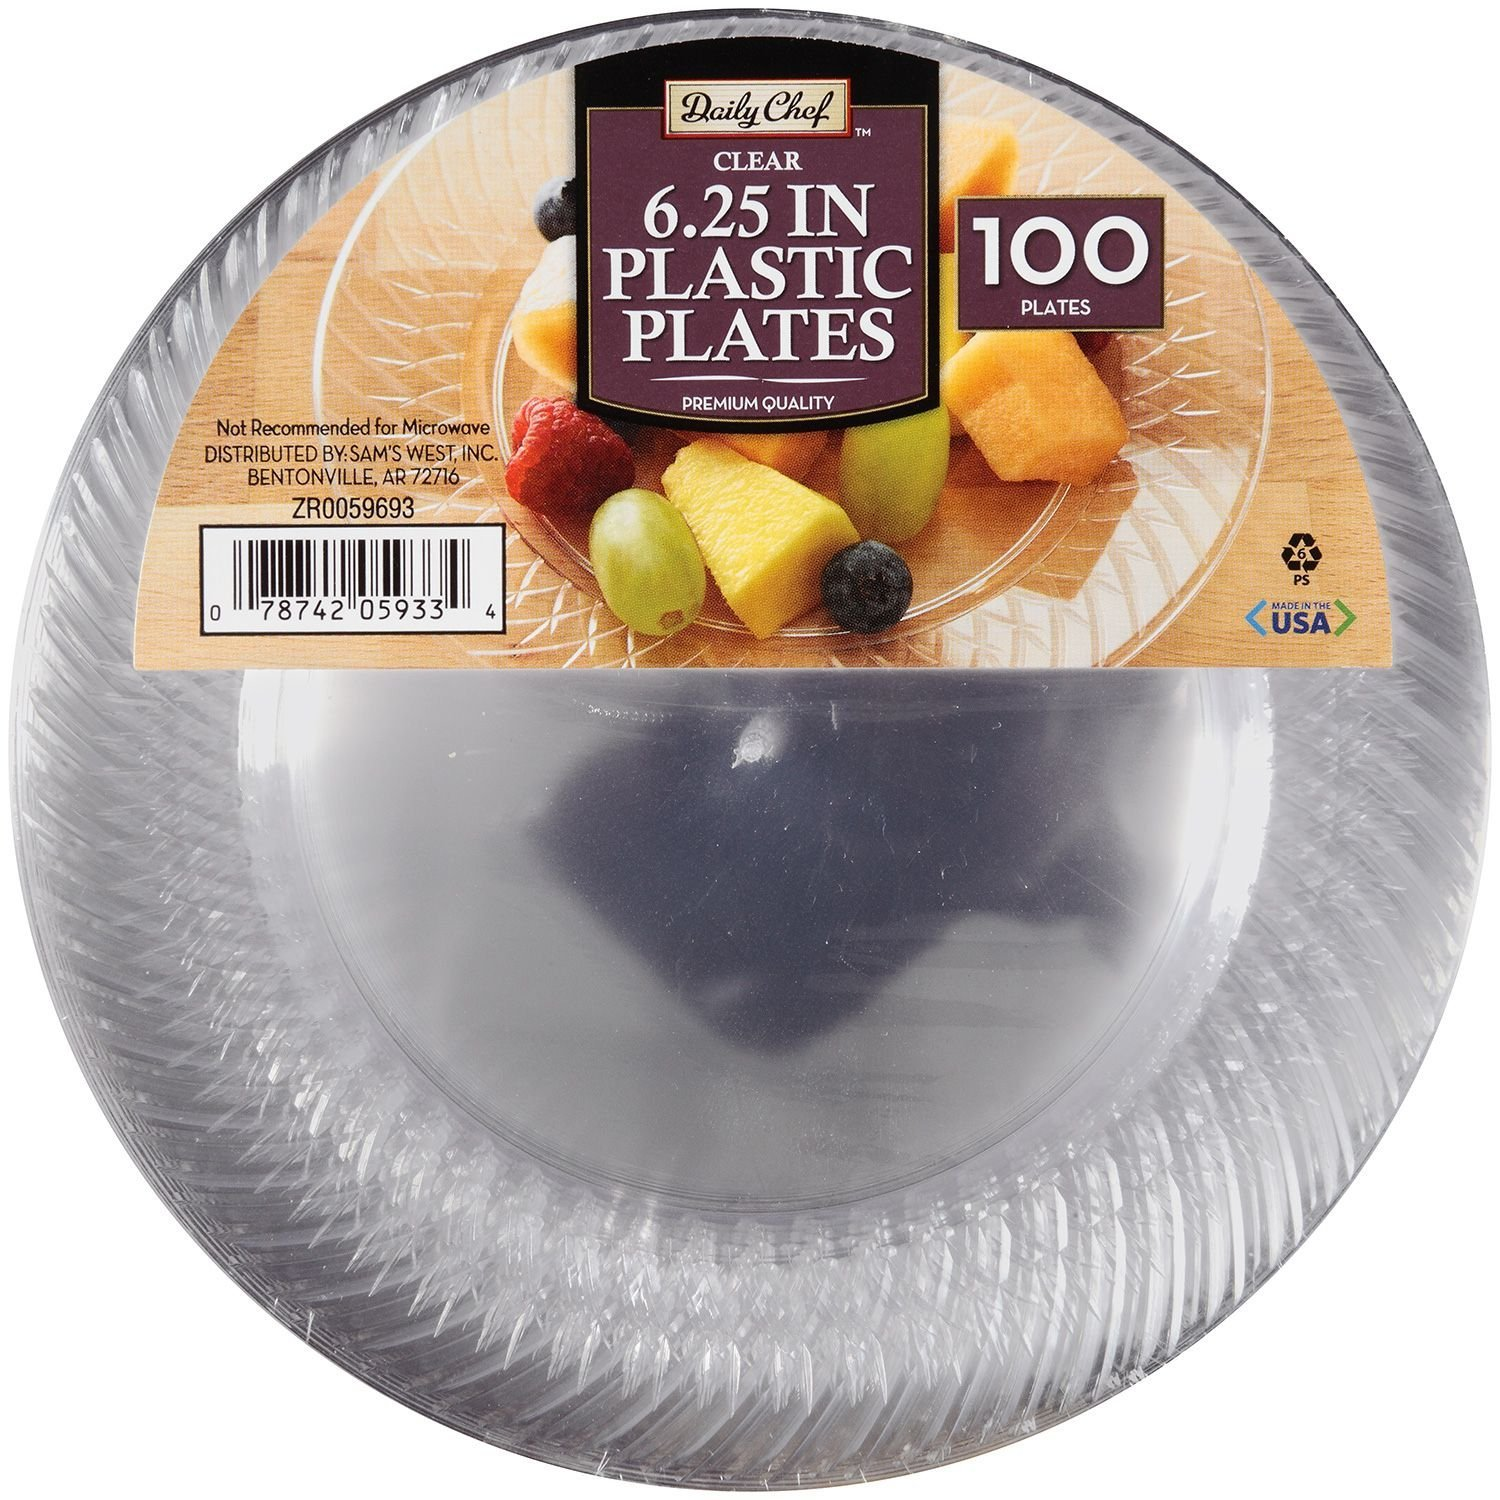 Daily Chef 6.25-Inch Plastic Plates, Clear, 100 Count K6PS62